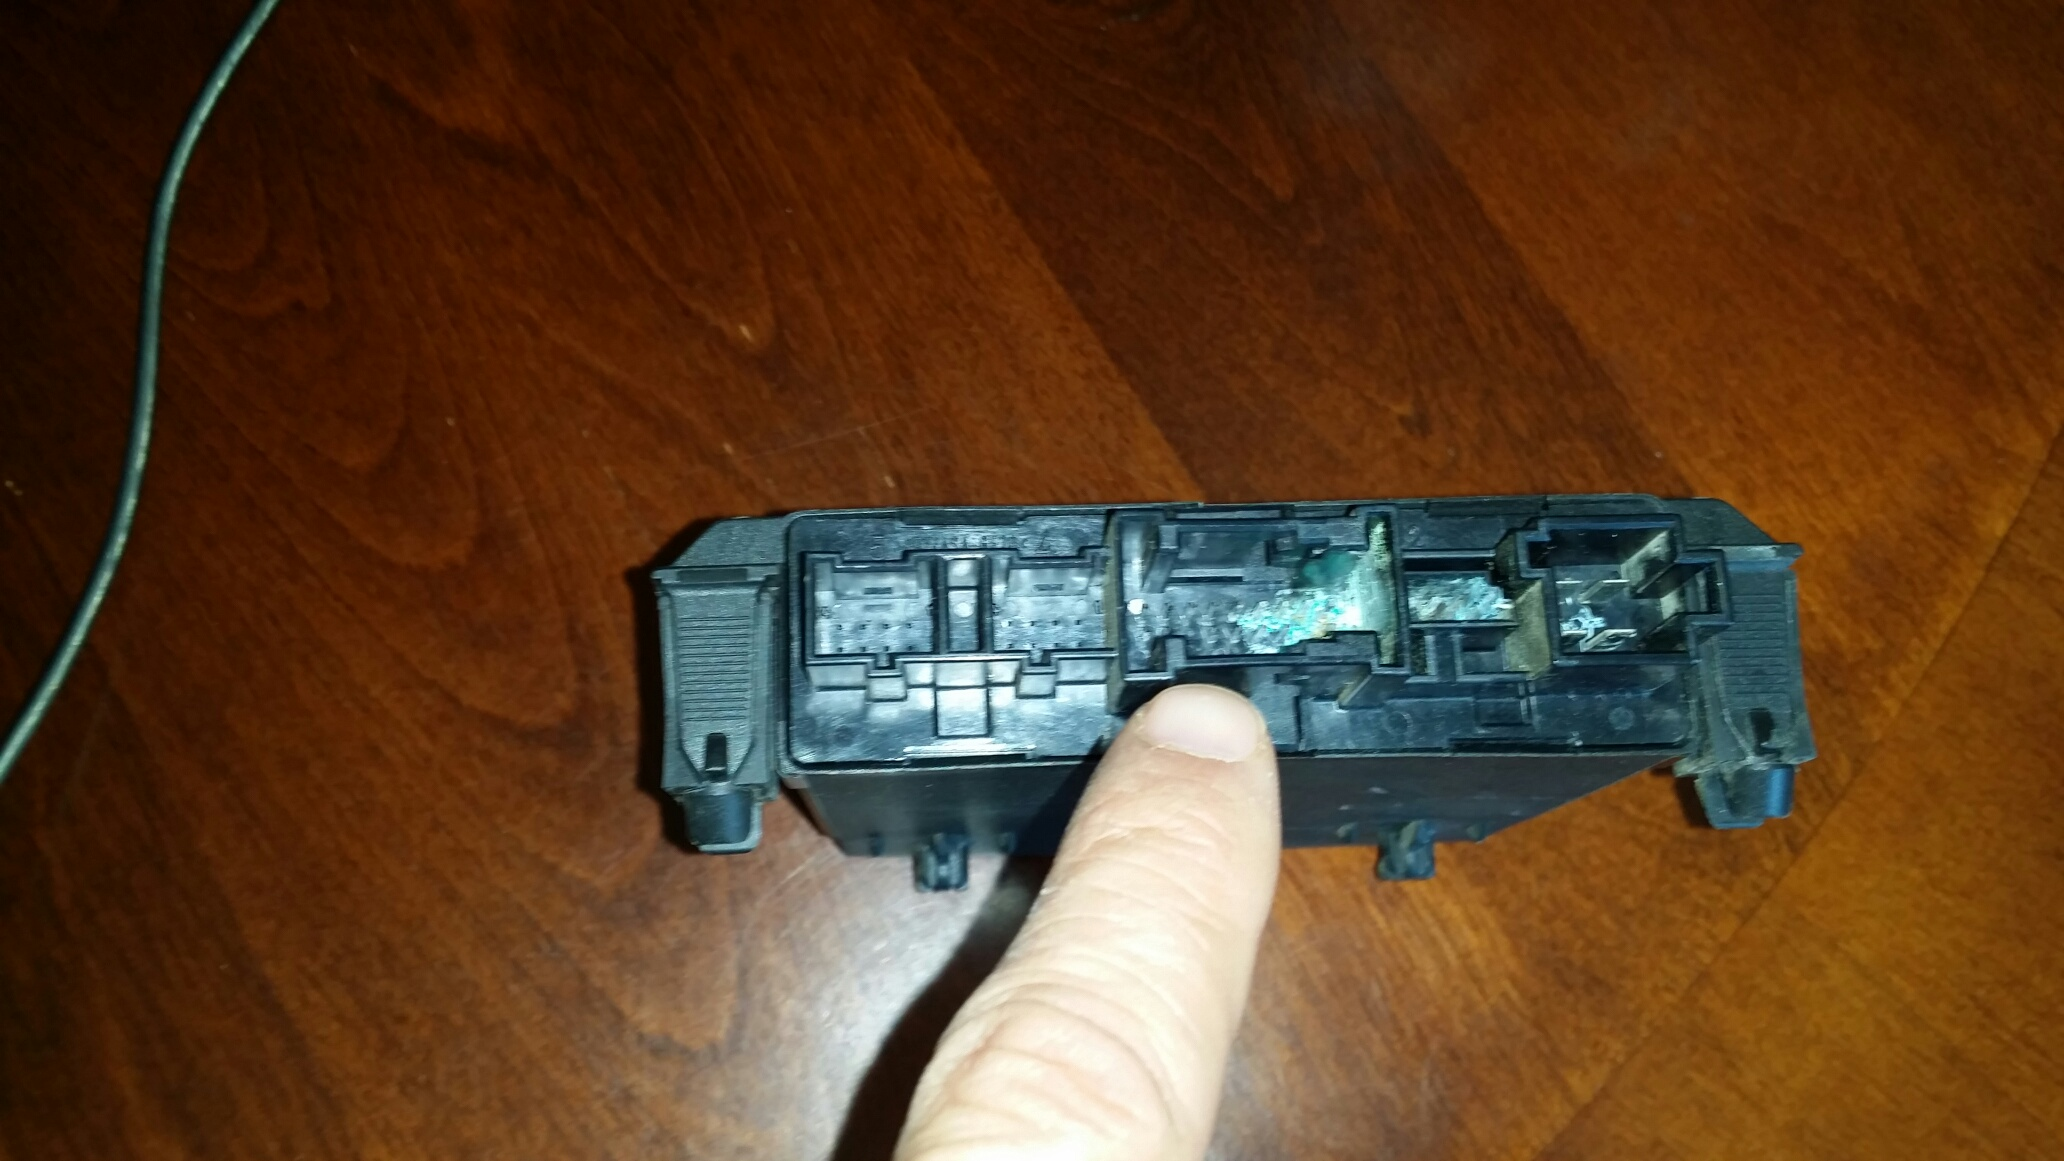 Car Fuse Box Got Wet : Fuse box diagram i just purchased this car and there are